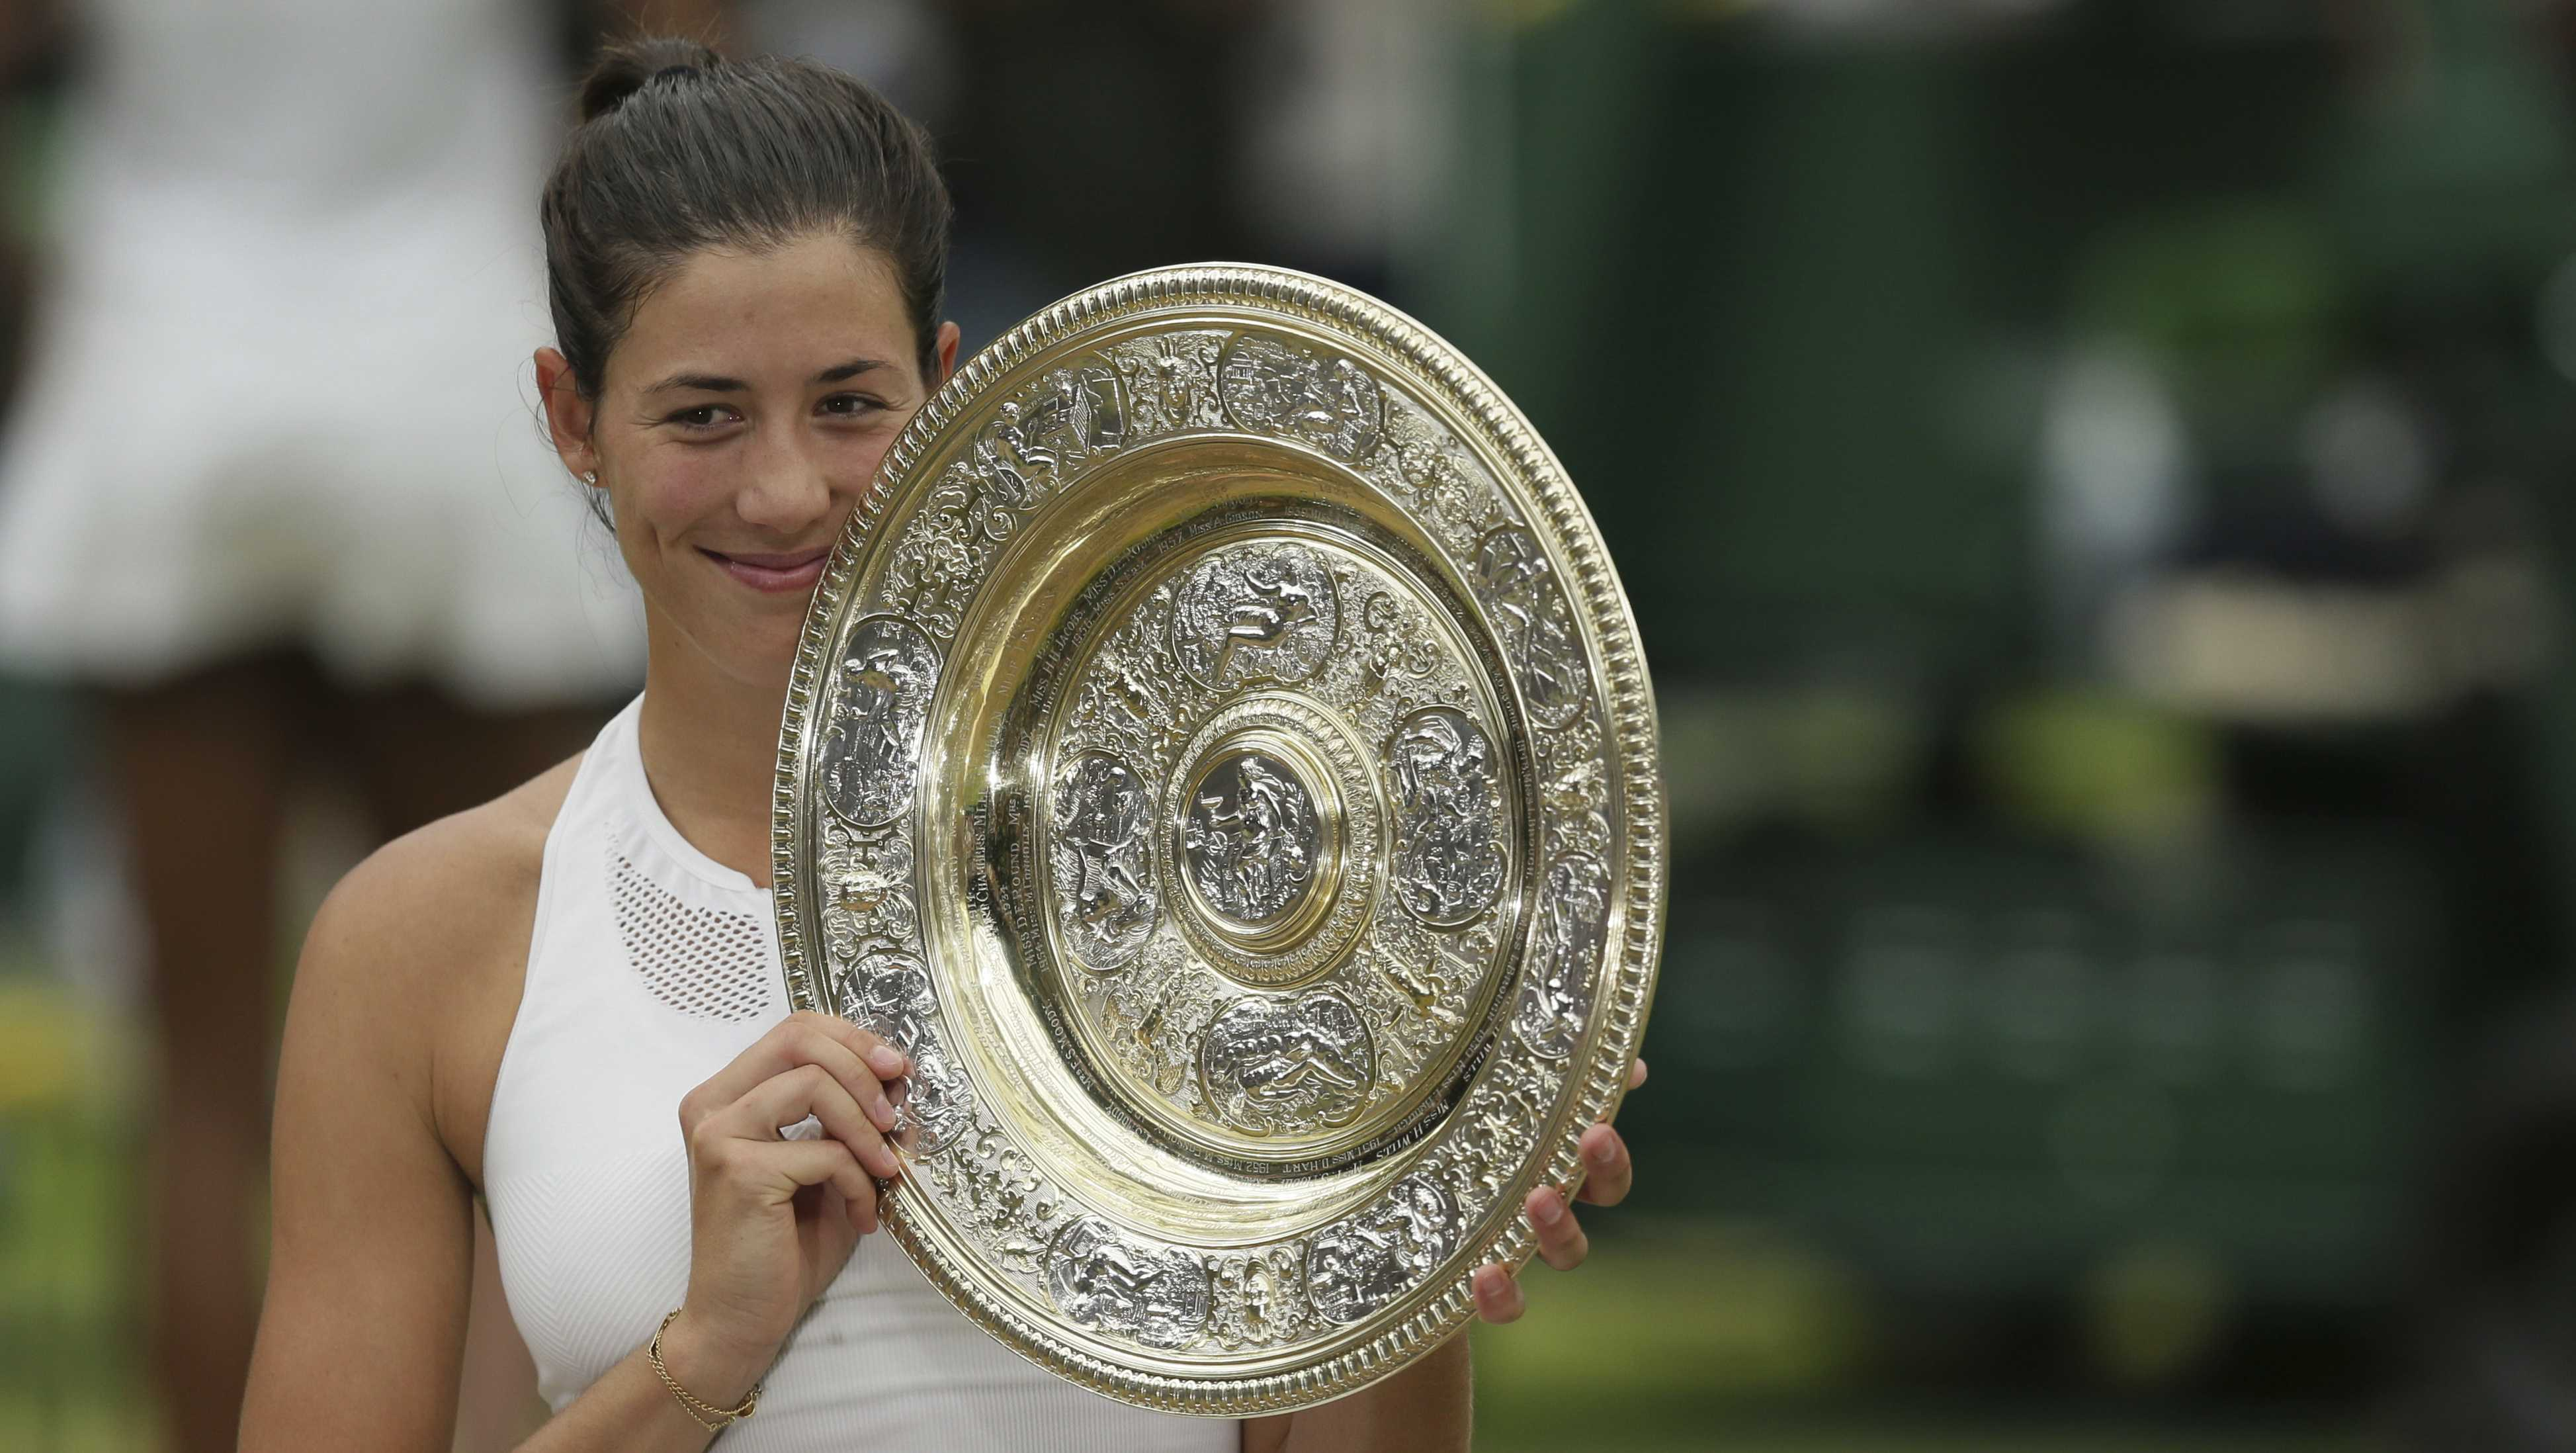 Spain's Garbine Muguruza holds up the trophy after defeating Venus Williams in the women's final at Wimbledon on July 15, 2017.